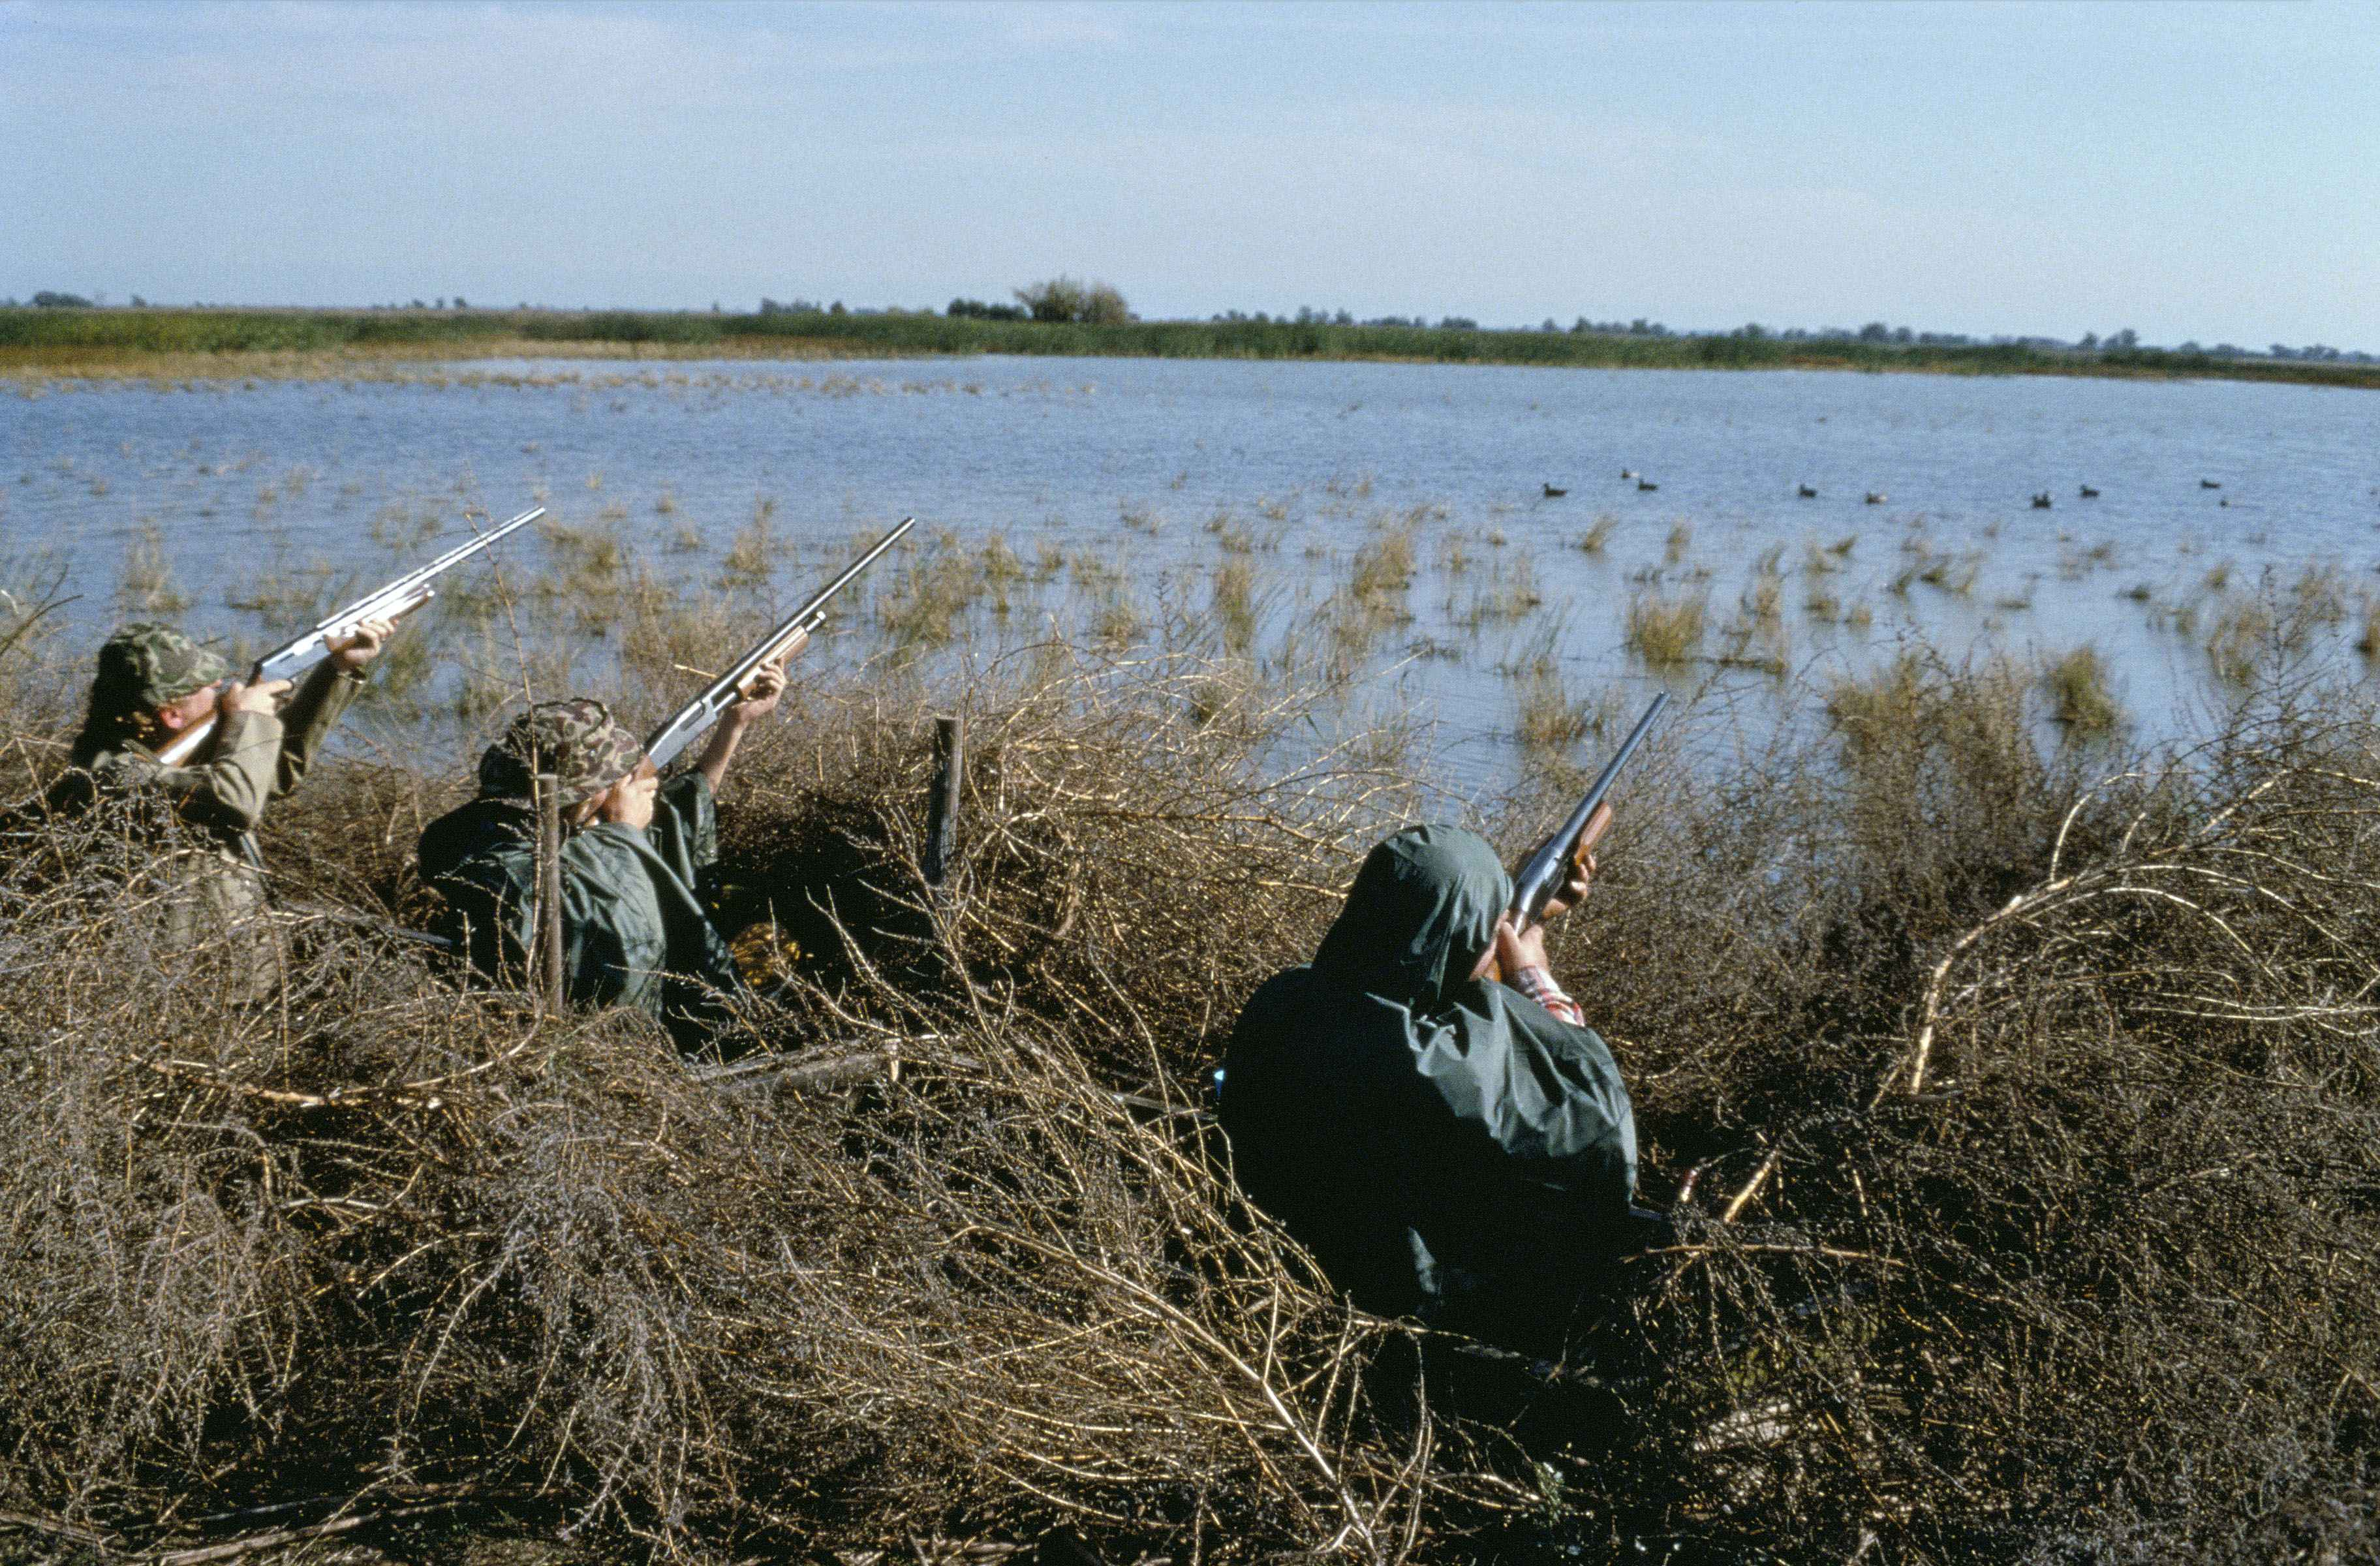 Three_camouflaged_hunters_on_waterfowl